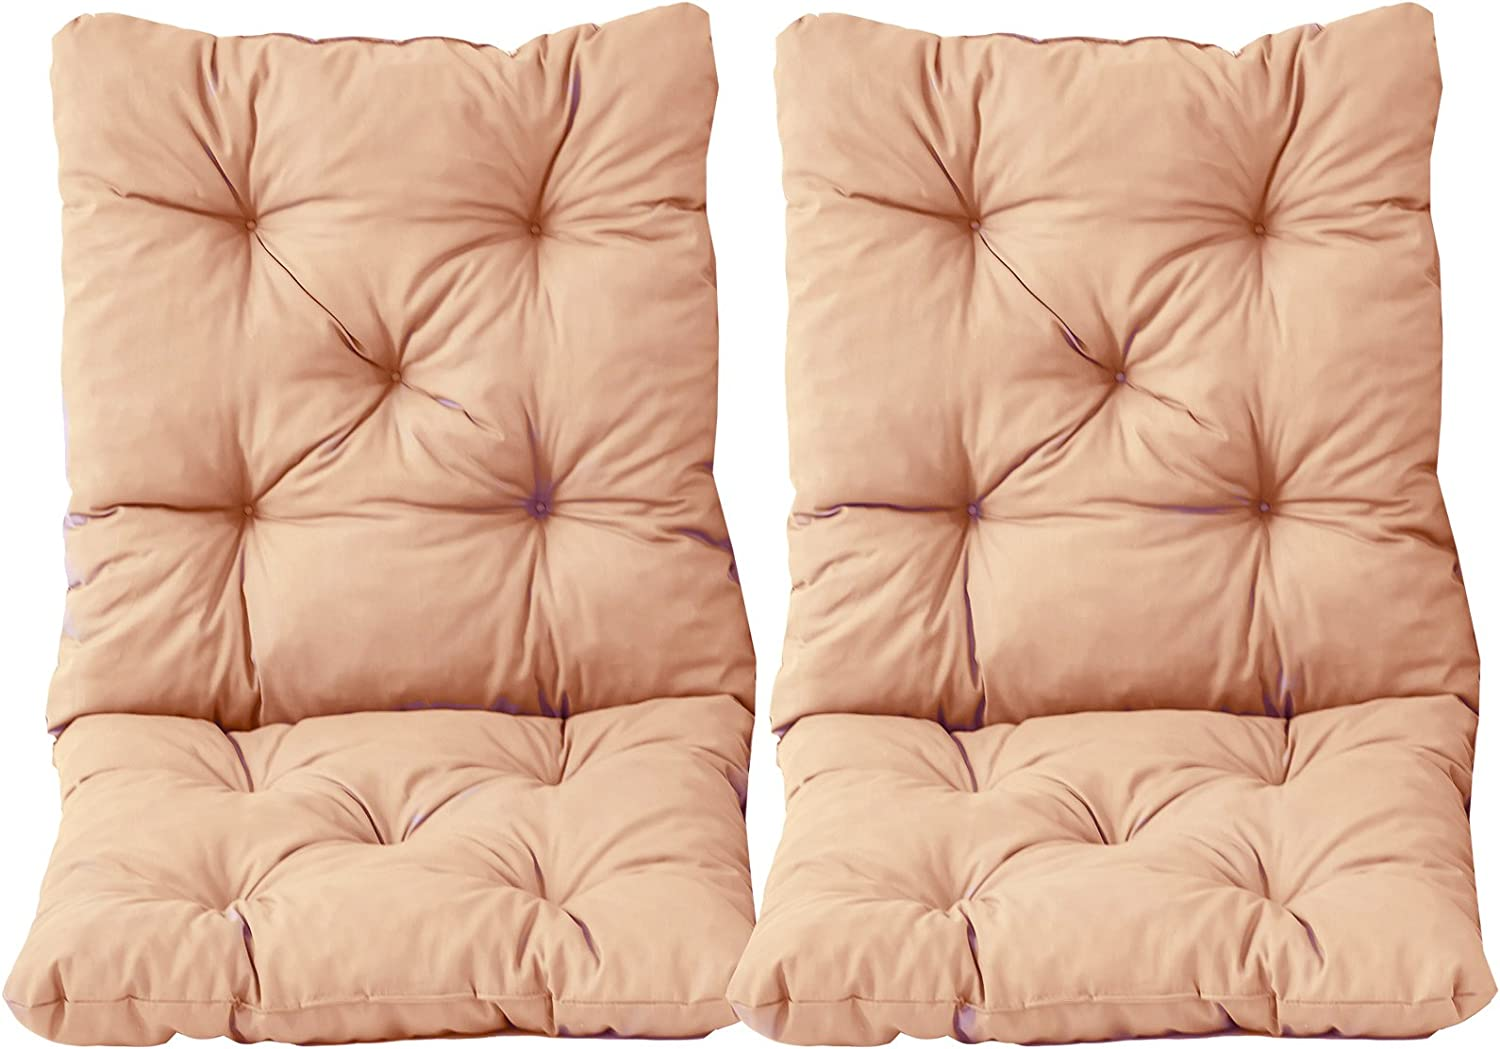 Red Ambientehome 98 x 50 x 8 cm HANKO Garden Arm Chair Cotton Padded Low Back Cushion 2-Piece